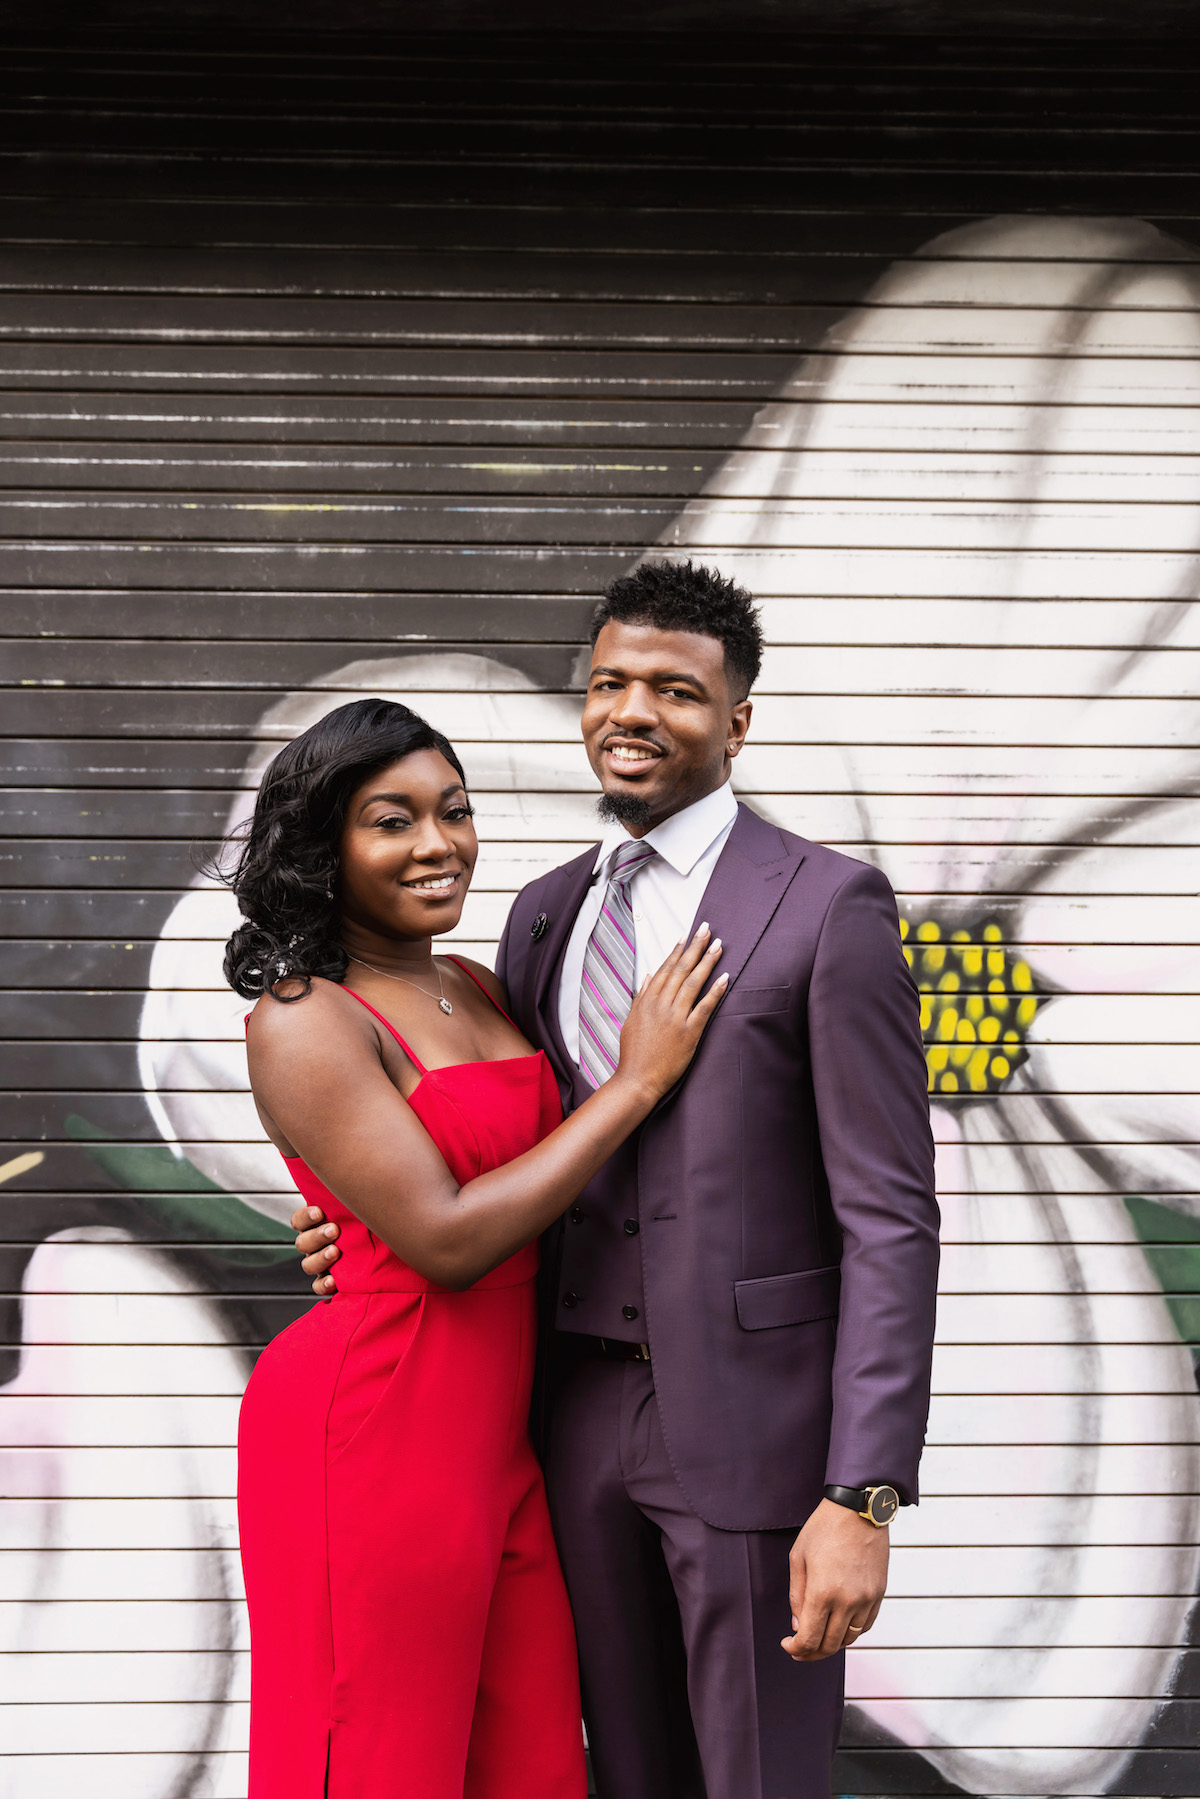 Chris Williams & Paige star in Season 12 of Married at First Sight